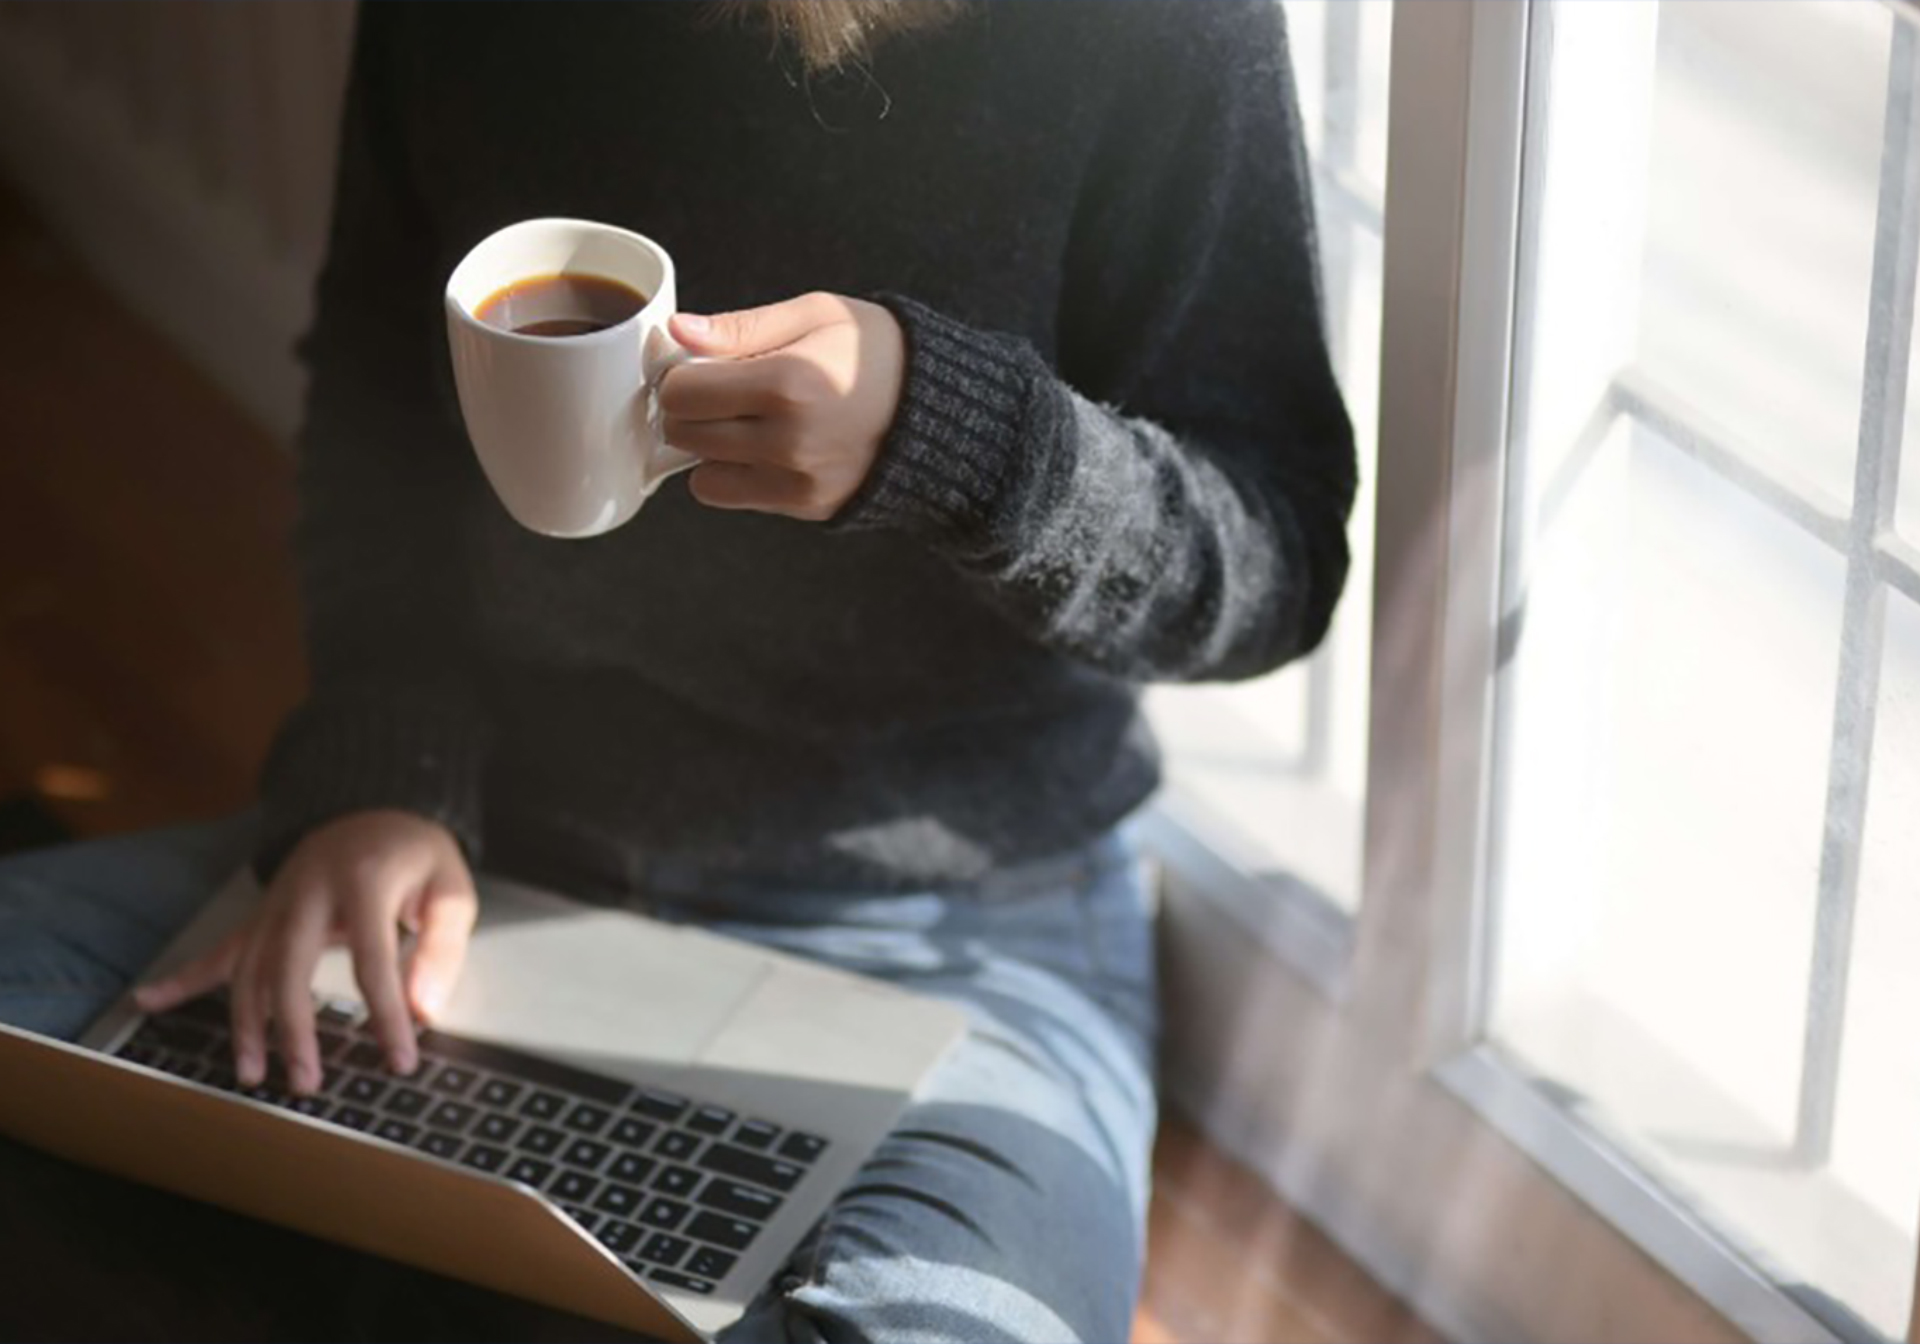 5 Apps To Keep Your WFH Progress In Check